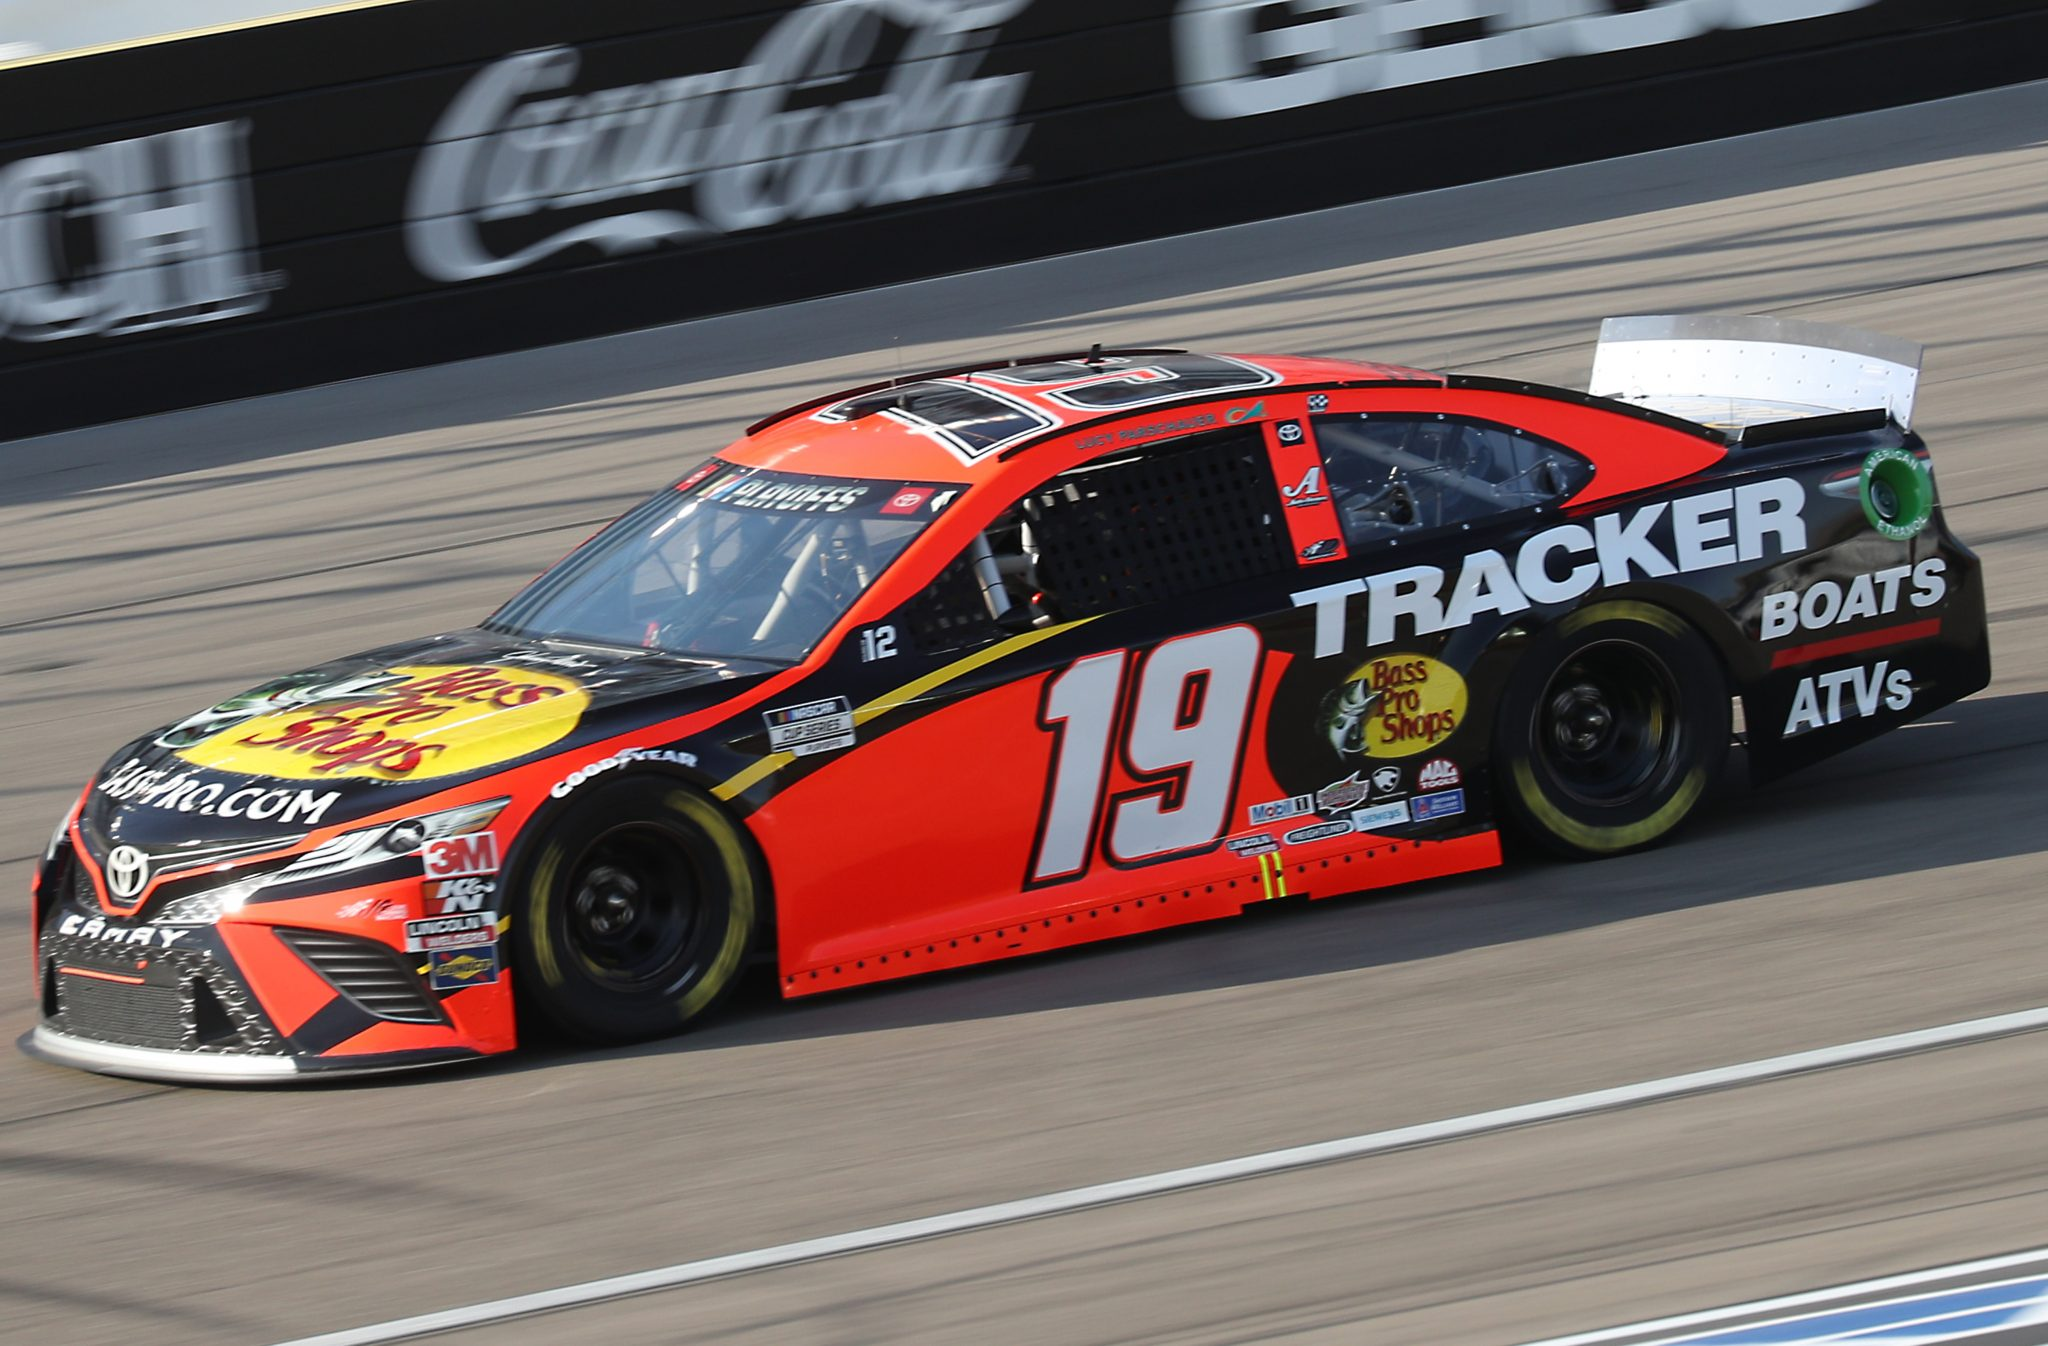 LAS VEGAS, NEVADA - SEPTEMBER 27: Martin Truex Jr., driver of the #19 Bass Pro Shops Toyota, drives during the NASCAR Cup Series South Point 400 at Las Vegas Motor Speedway on September 27, 2020 in Las Vegas, Nevada. (Photo by Chris Graythen/Getty Images) | Getty Images